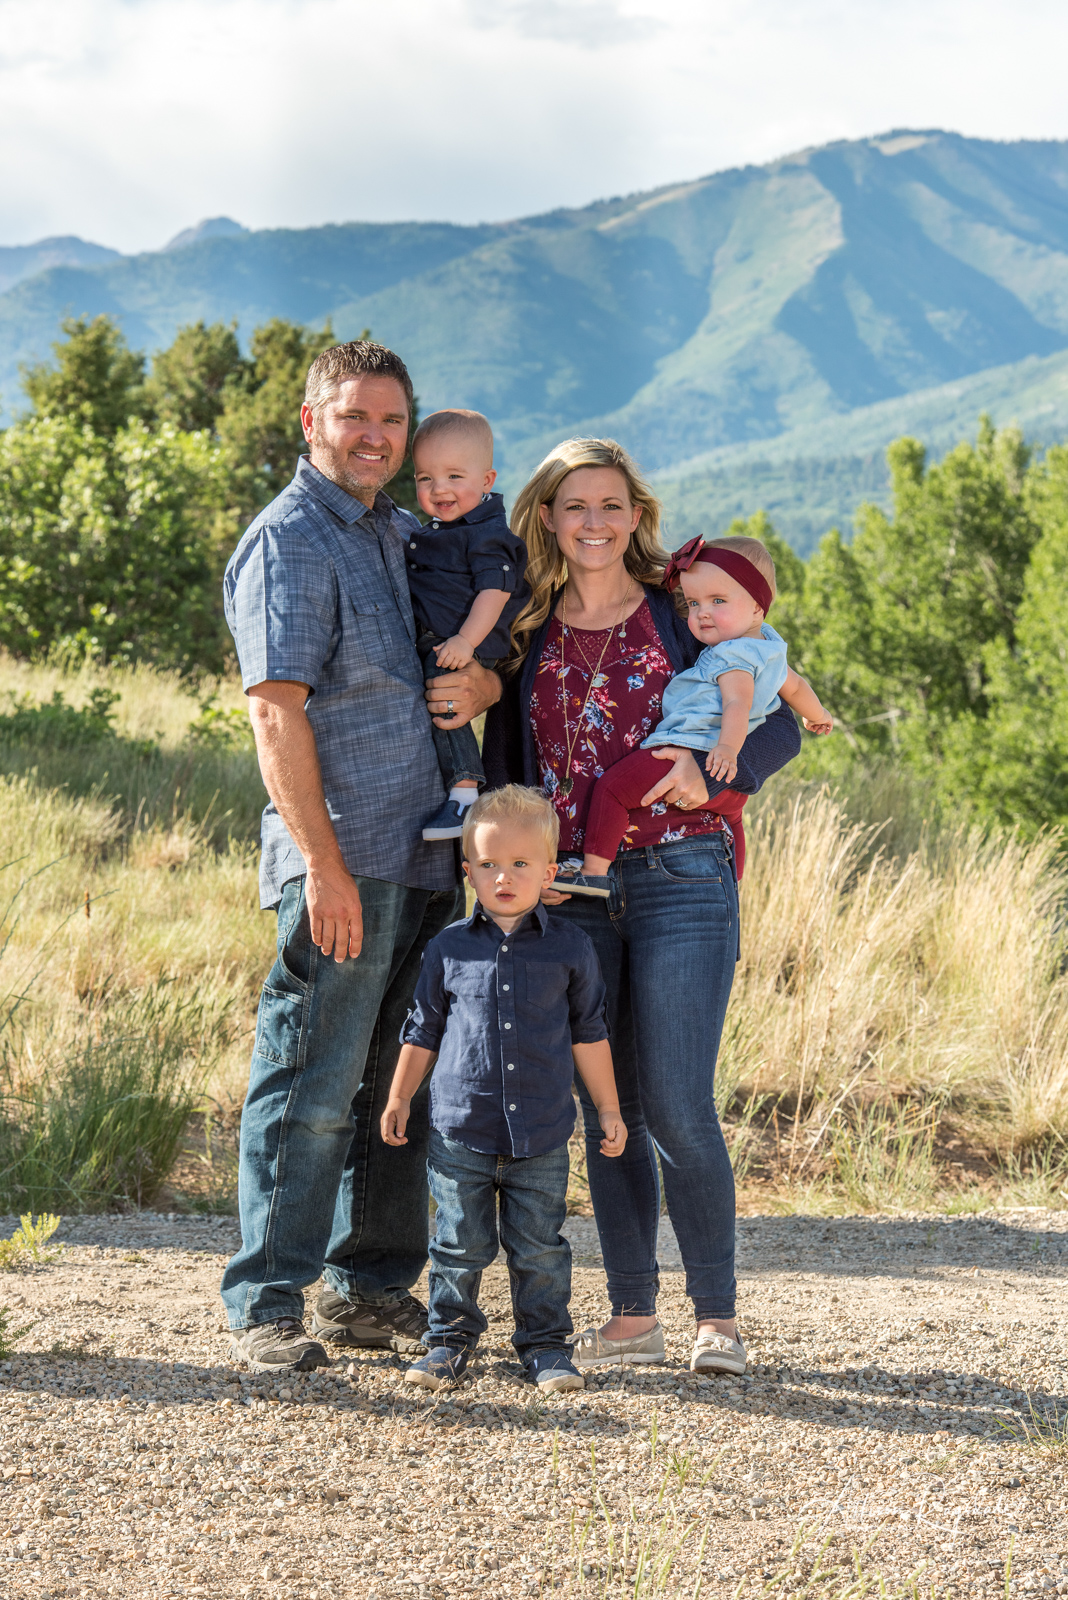 Allison Ragsdale Photography in Durango Colorado